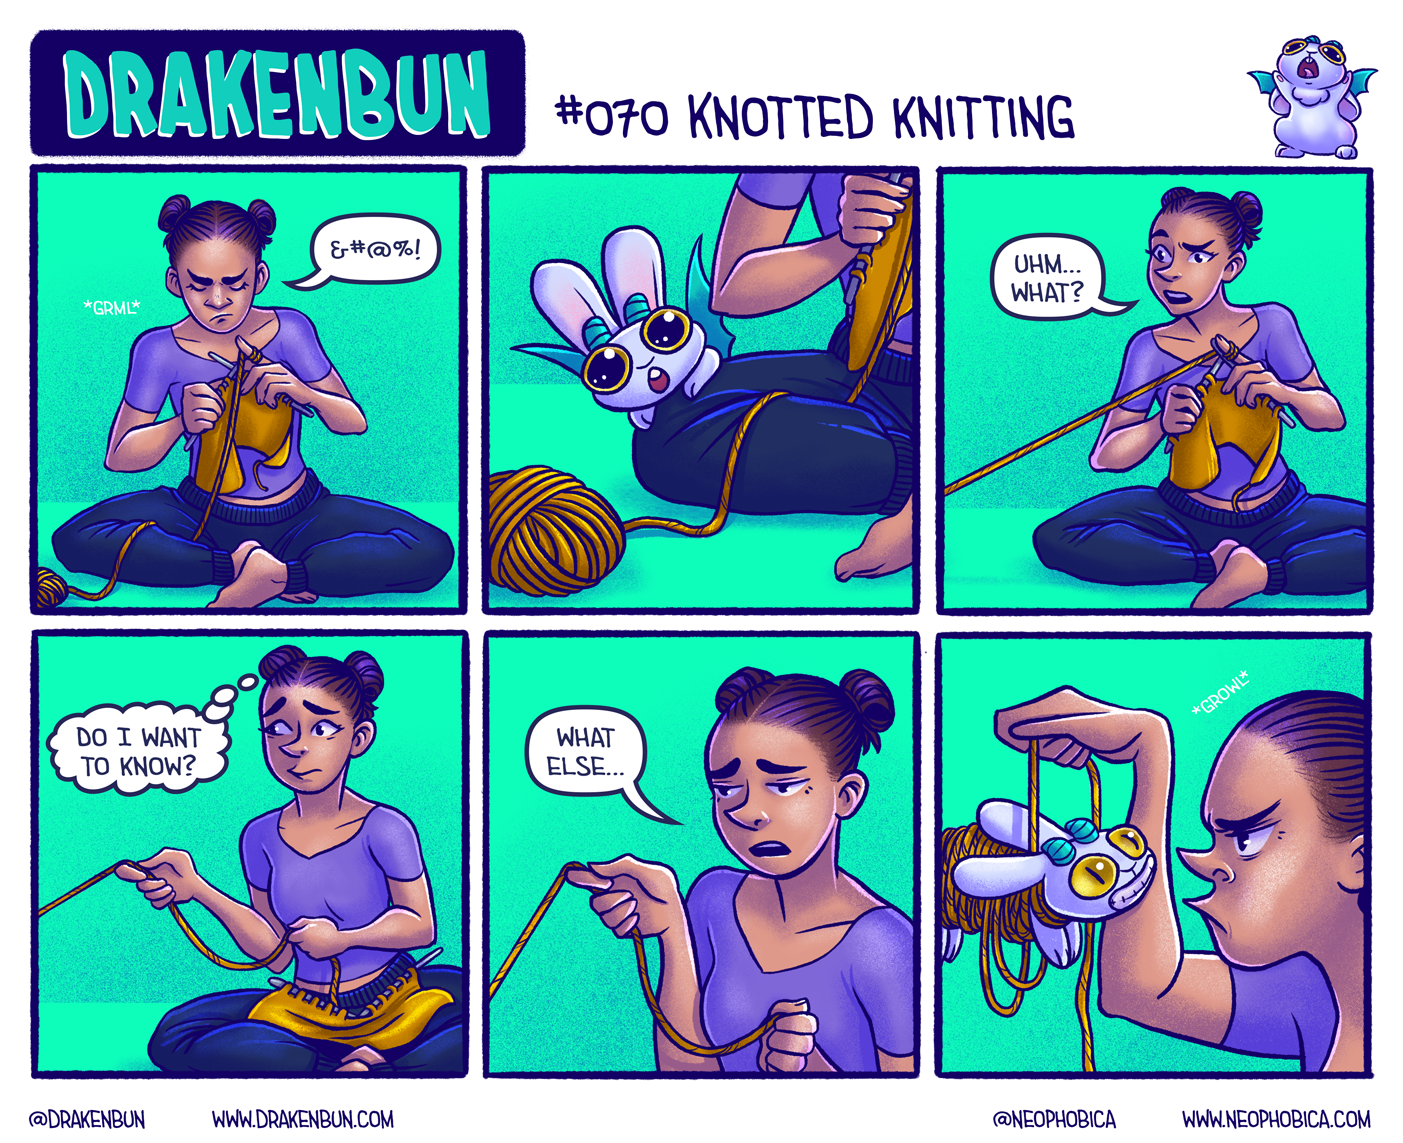 #070 Knotted Knitting